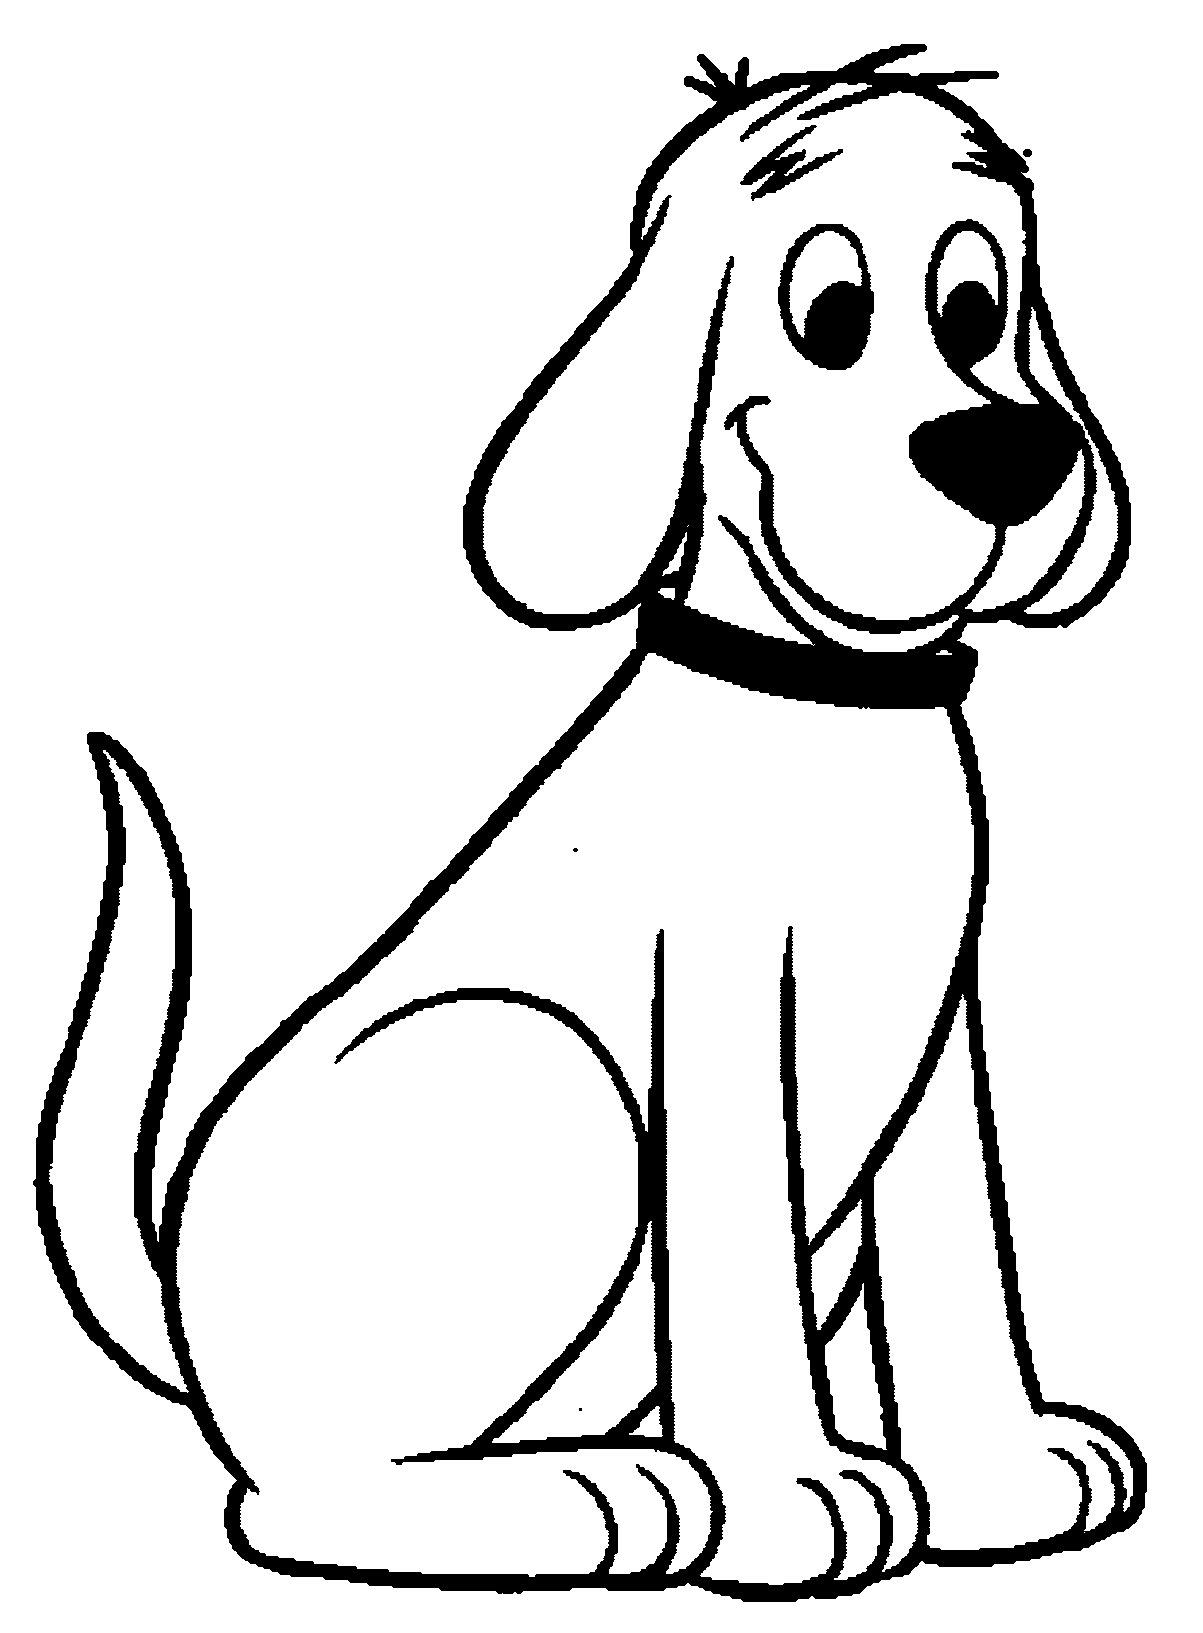 Clifford Coloring Pages Best Coloring Pages For Kids Animal Coloring Pages Dog Coloring Page Cartoon Coloring Pages [ 1633 x 1203 Pixel ]